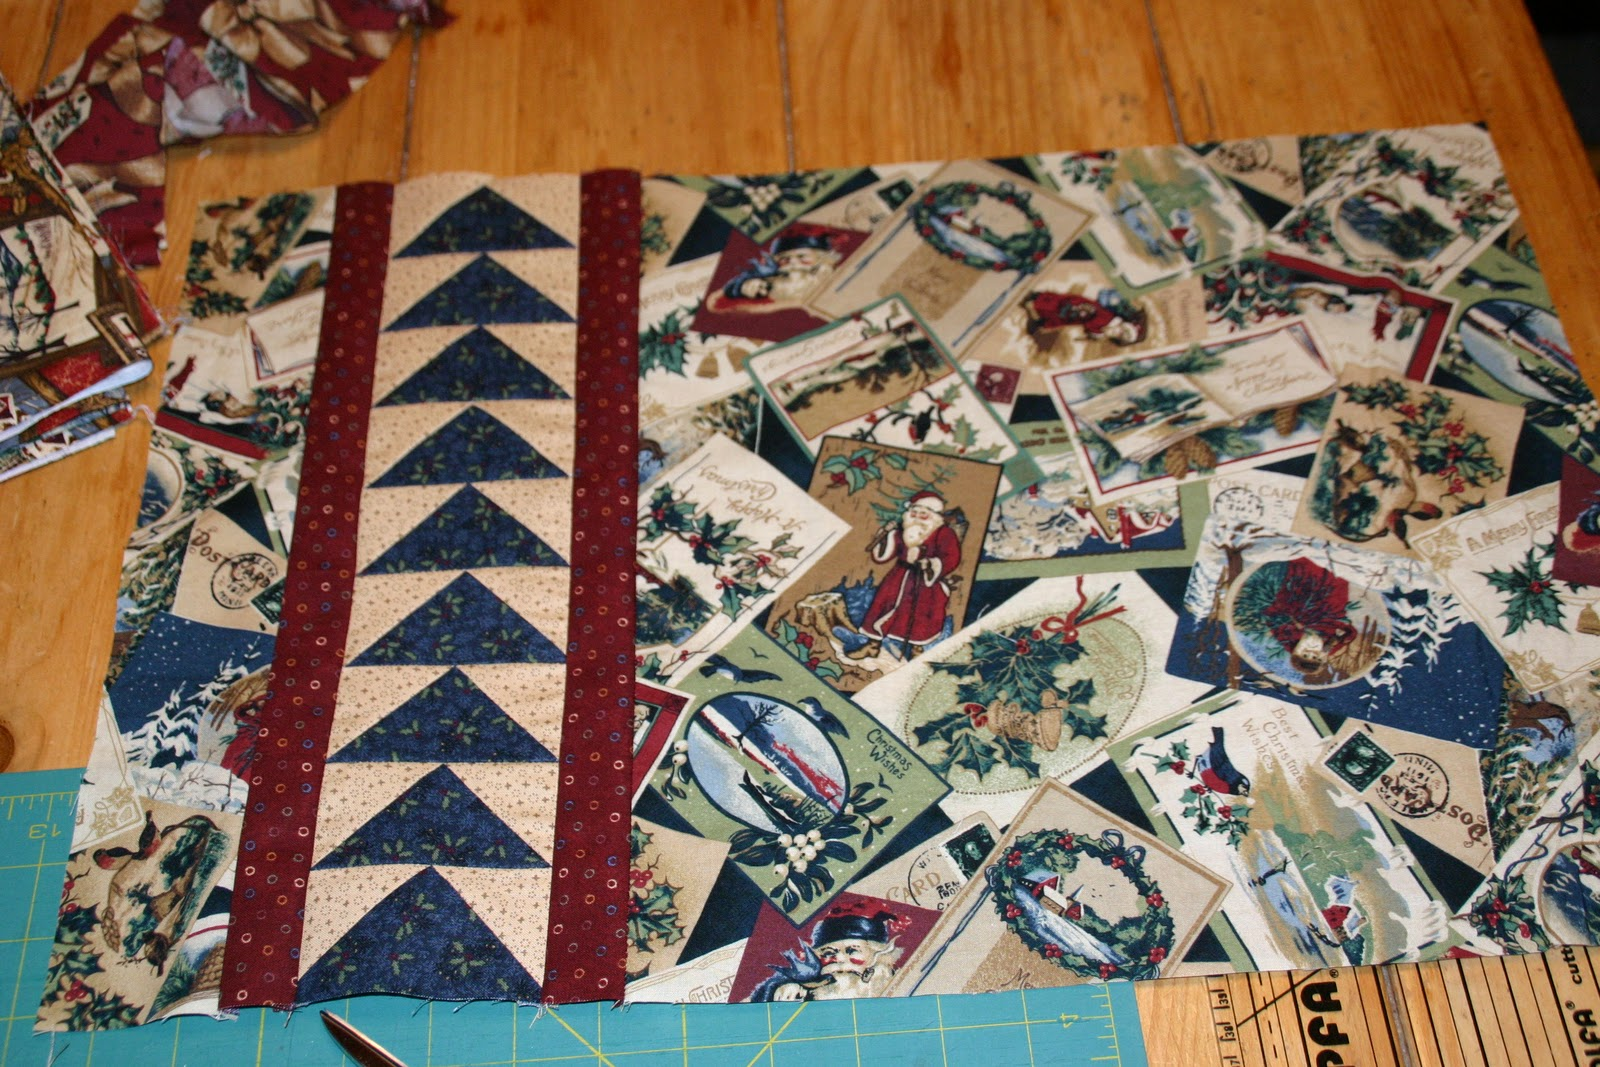 Sewn wild oaks quilting blog christmas placemats im very old fashioned when it comes to traditional christmas fabric ive had this thimbleberries fabric for years and now im using it all up in placemats solutioingenieria Choice Image